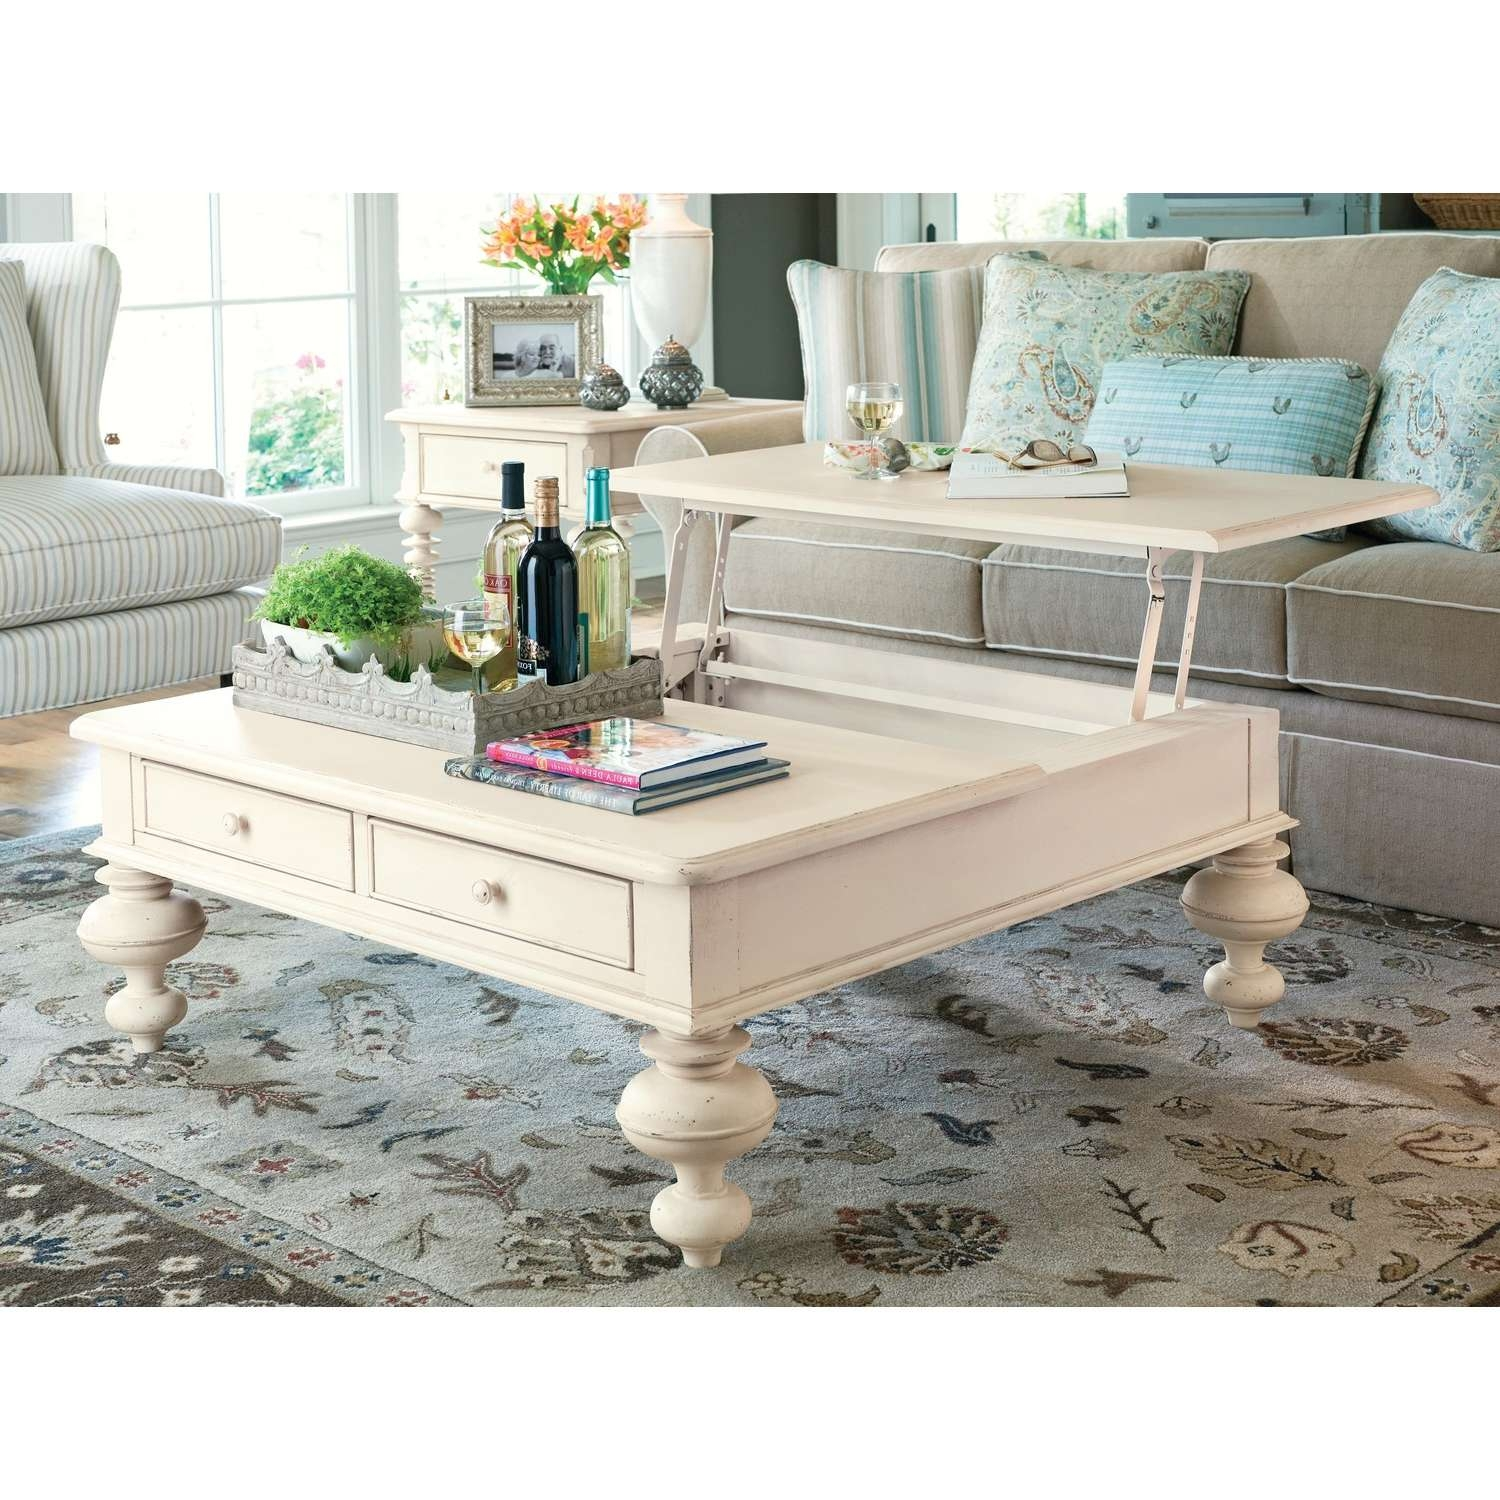 Paula Deen Home Put Your Feet Up Lift Top Coffee Table Set – Take Regarding Latest Lift Up Top Coffee Tables (View 19 of 20)